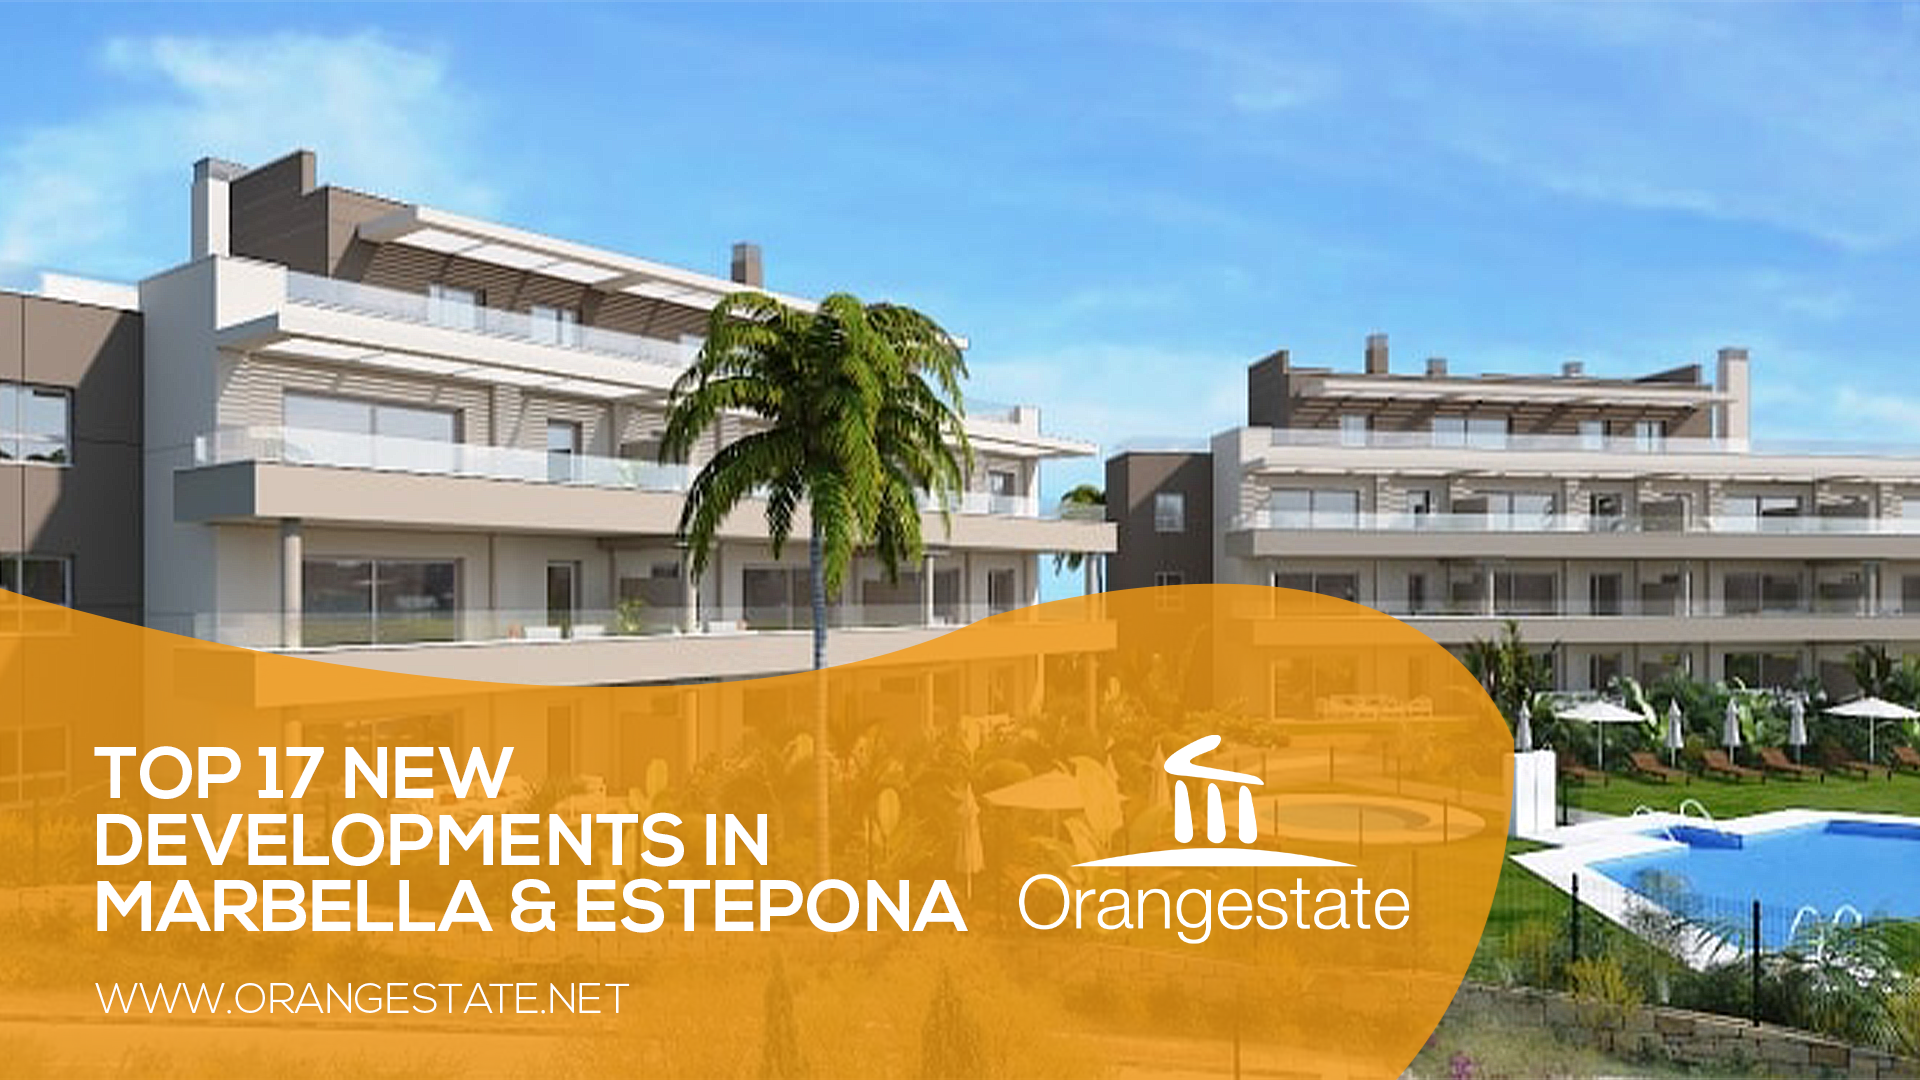 TOP NEW DEVELOPMENTS MARBELLA AND ESTEPONA